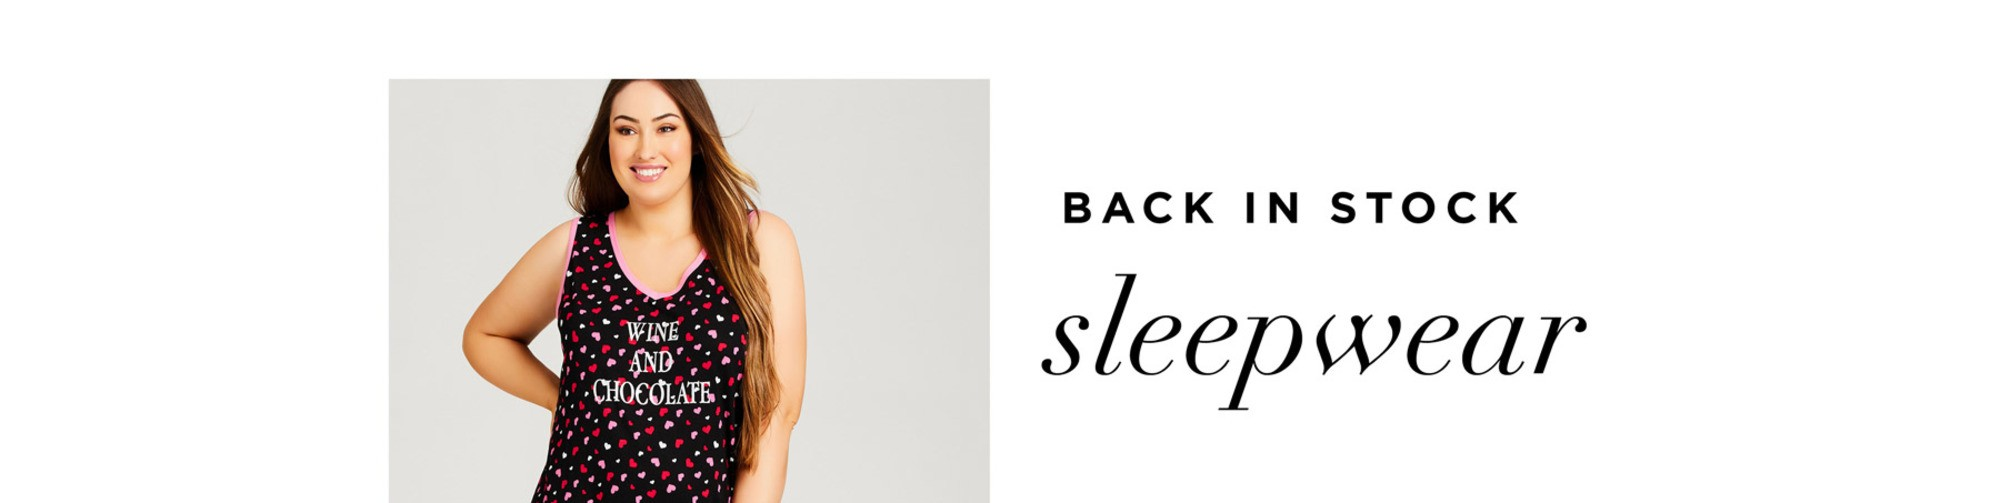 BACK IN STOCK SLEEPWEAR - $18 UNDER* - Treat yourself to the perfect night's sleep in our playful, cozy & comfortable sleepwear - SHOP NOW